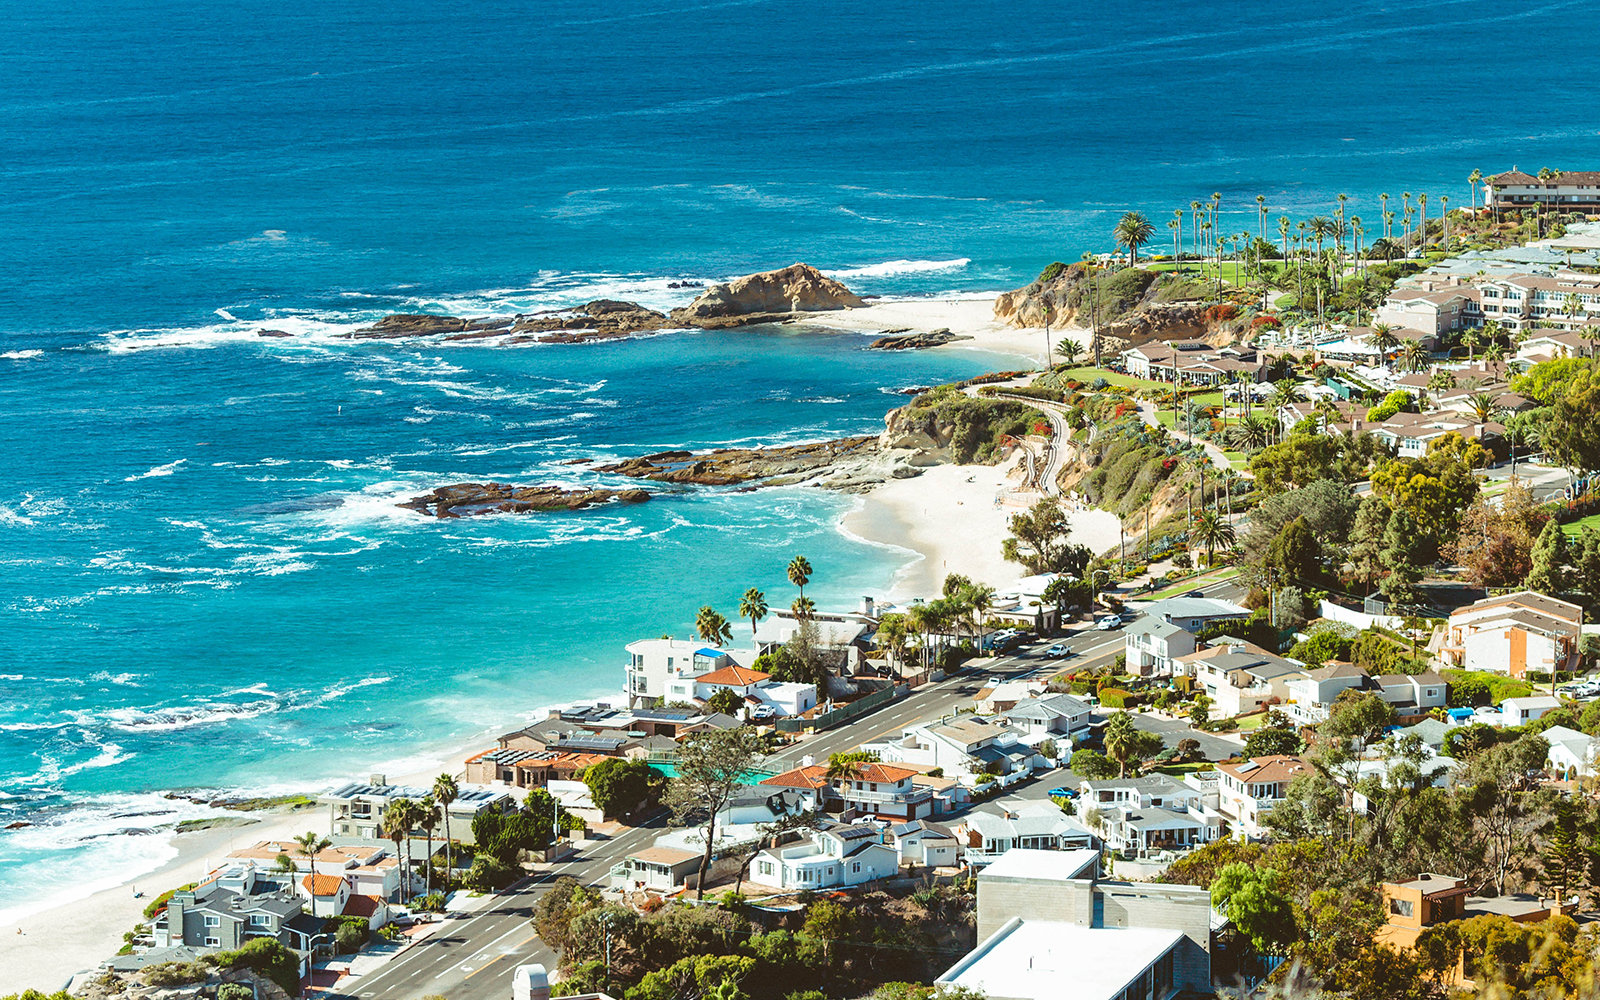 LAGUNA BEACH AND ITS RESTAURANTS: THE WAY IT USED TO BE